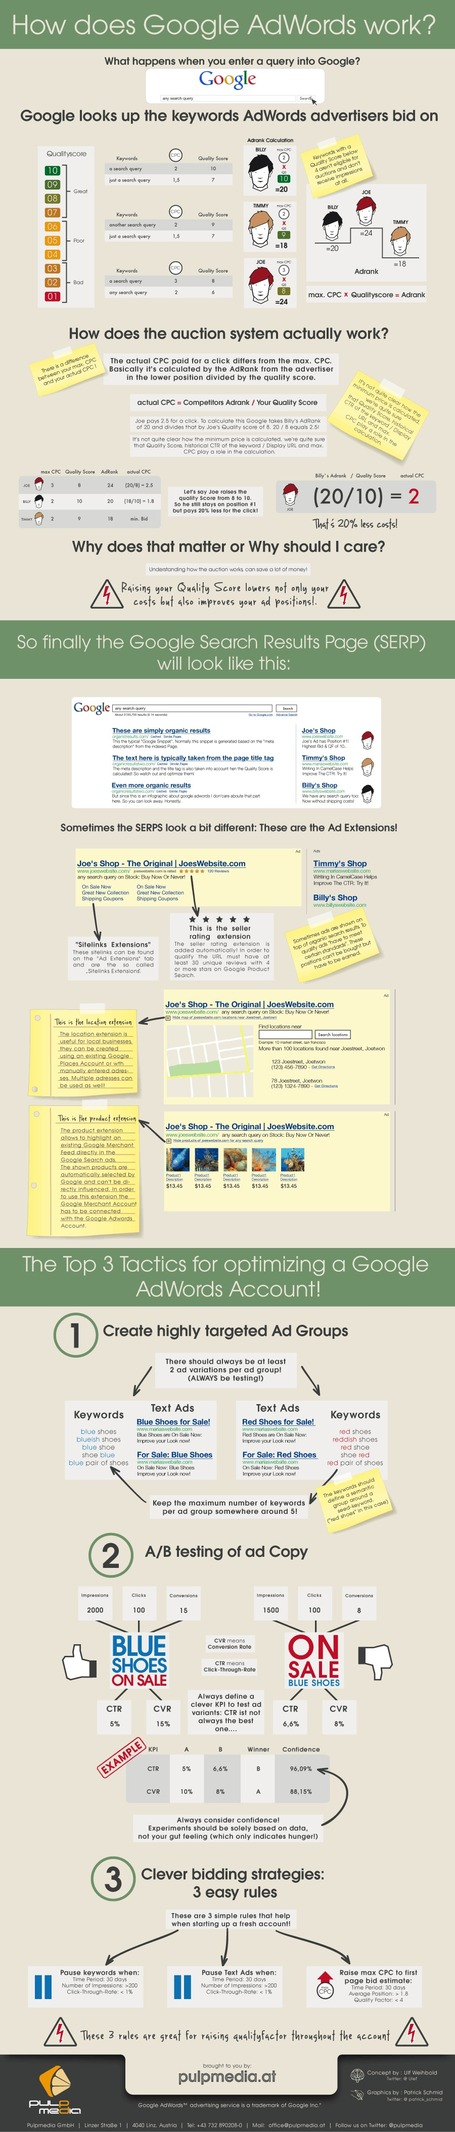 How Does Google AdWords Work [Infographic] | formation 2.0 | Scoop.it